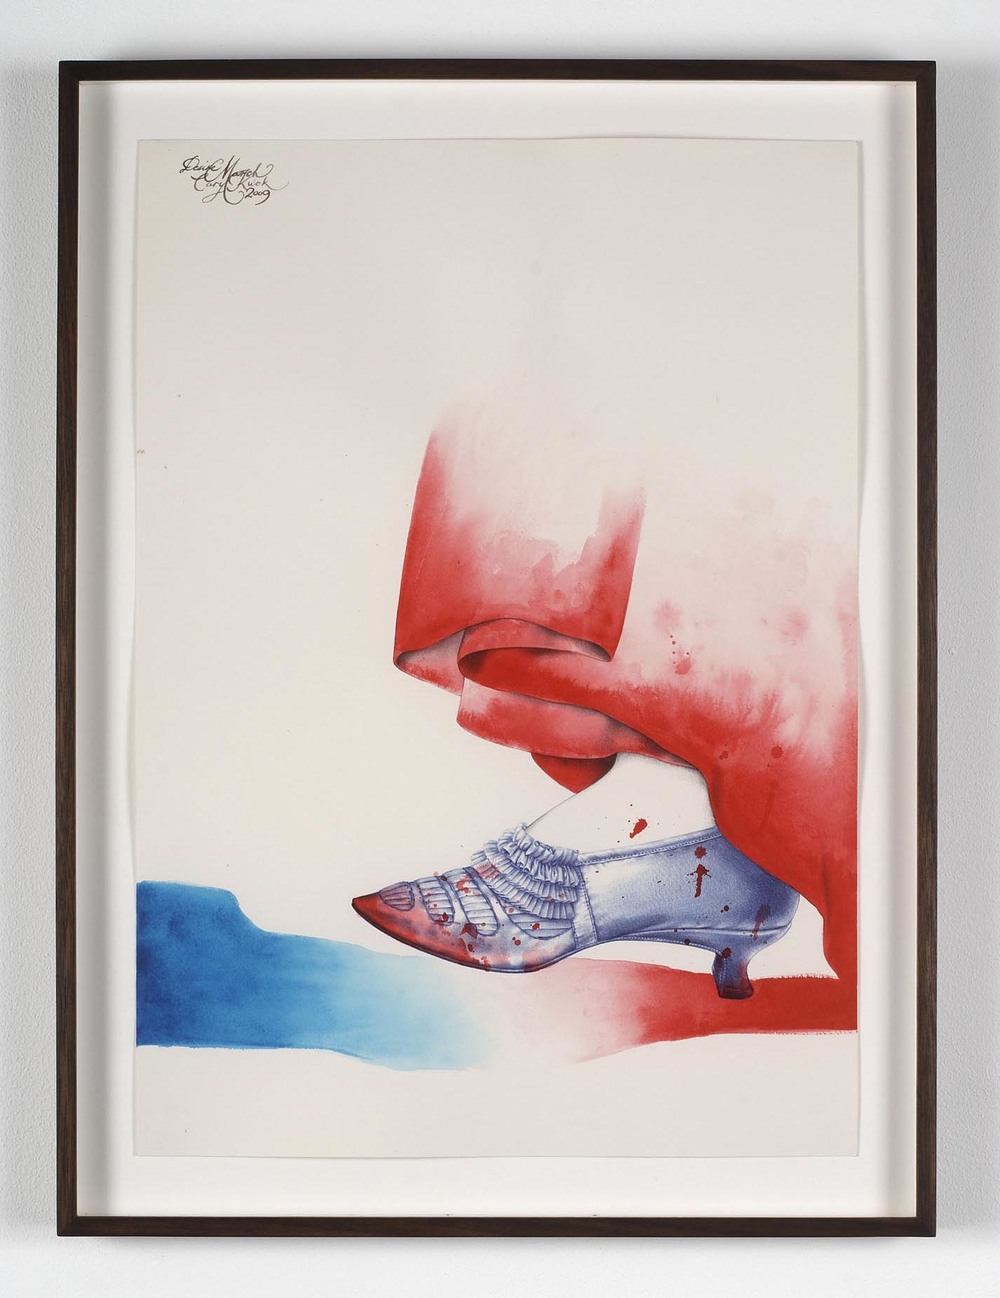 Desire - French (The Revolution)   2009   acrylic and ink on paper   42 x 29.7 cm